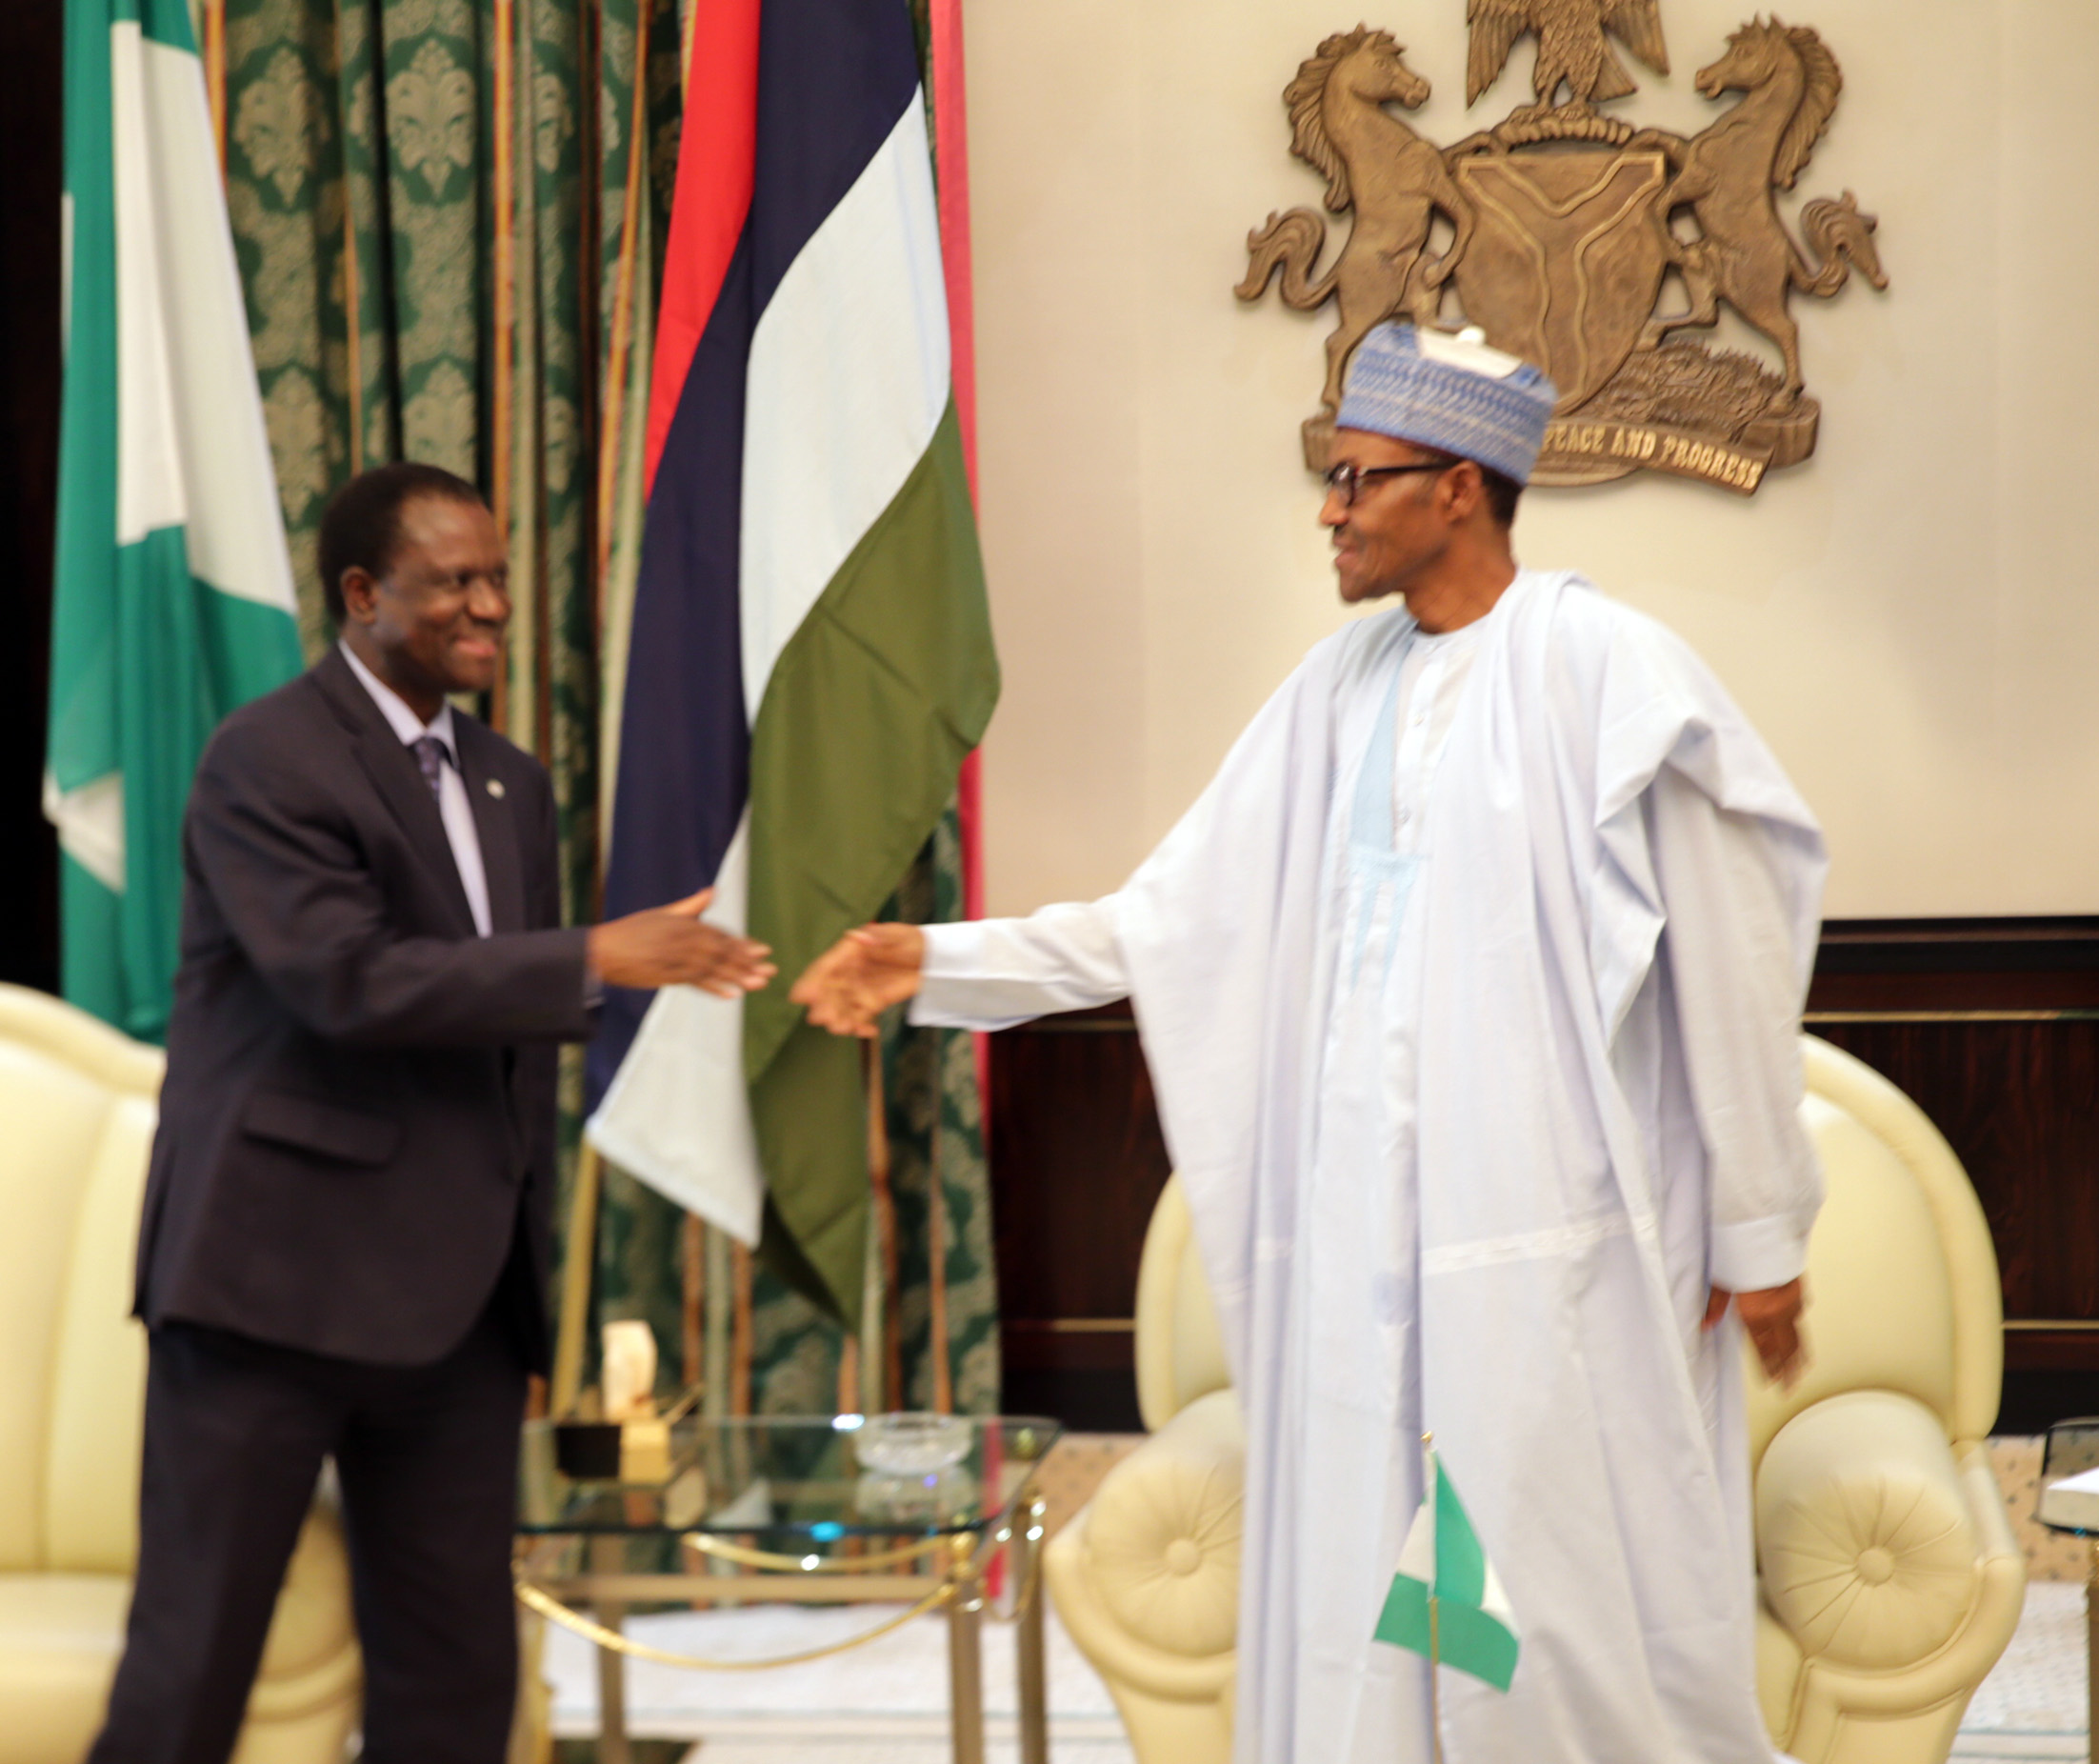 PRESIDENT BUHARI RECEIVES ECOWAS PRESIDENT 0A. President Muhammadu Buhari receives ECOWAS President Kare Desire Ouedraogo left at the Presidential Villa in Abuja. PHOTO; OFFICE OF THE PRESIDENT JUNE 25 2015.